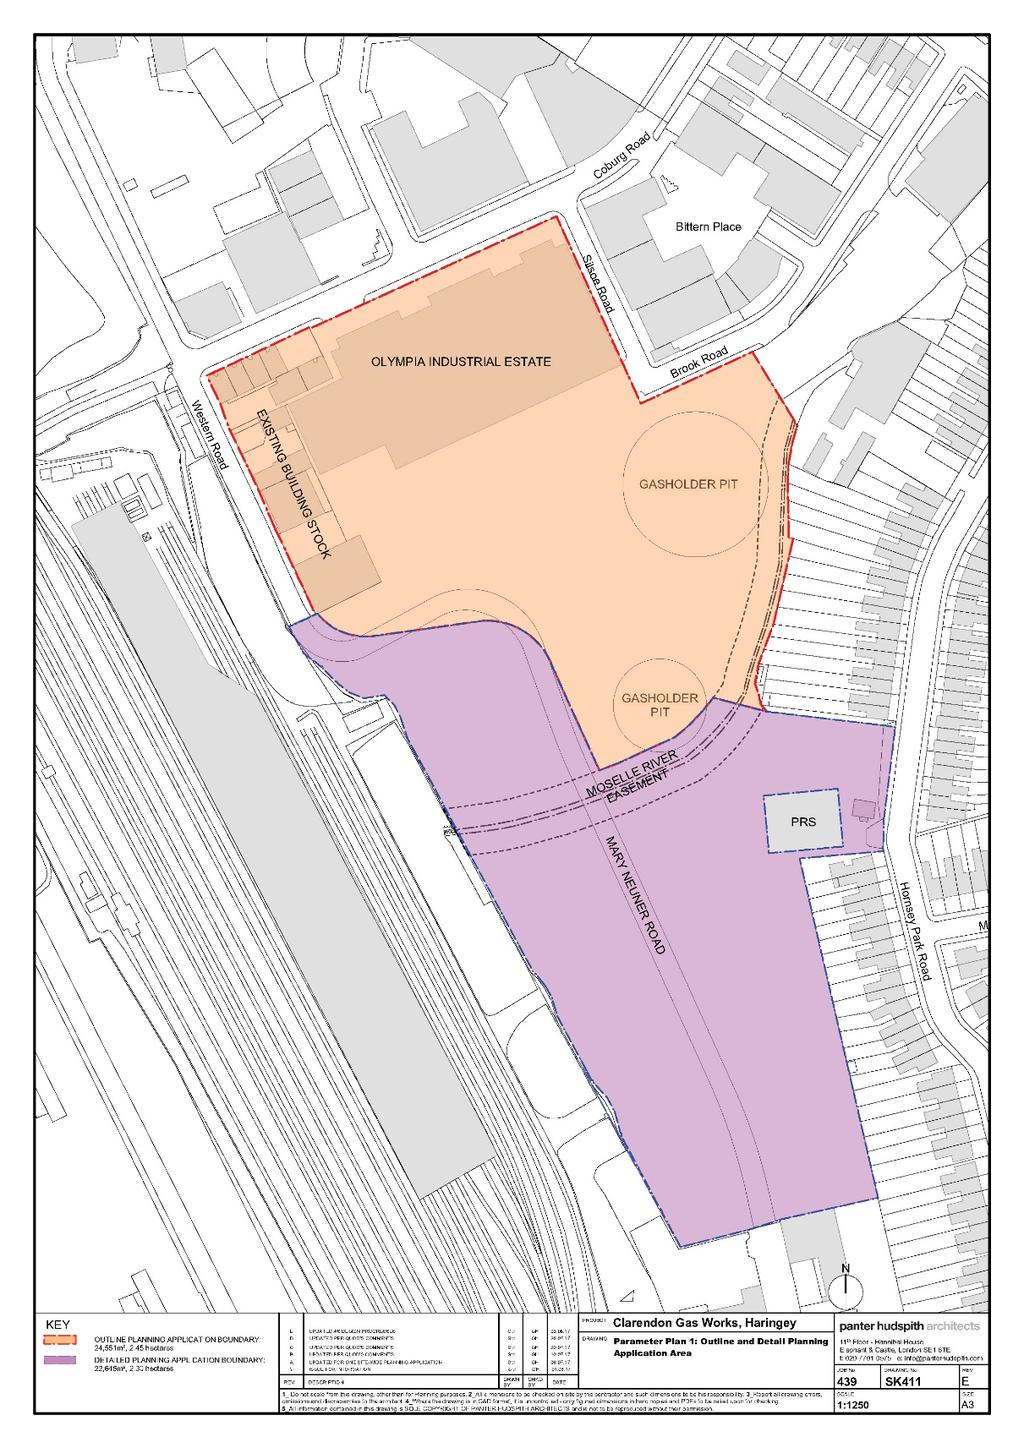 The submitted planning application is a hybrid application (the Application ) and comprises an Outline Component for the northern part of the Site (approx. 2.